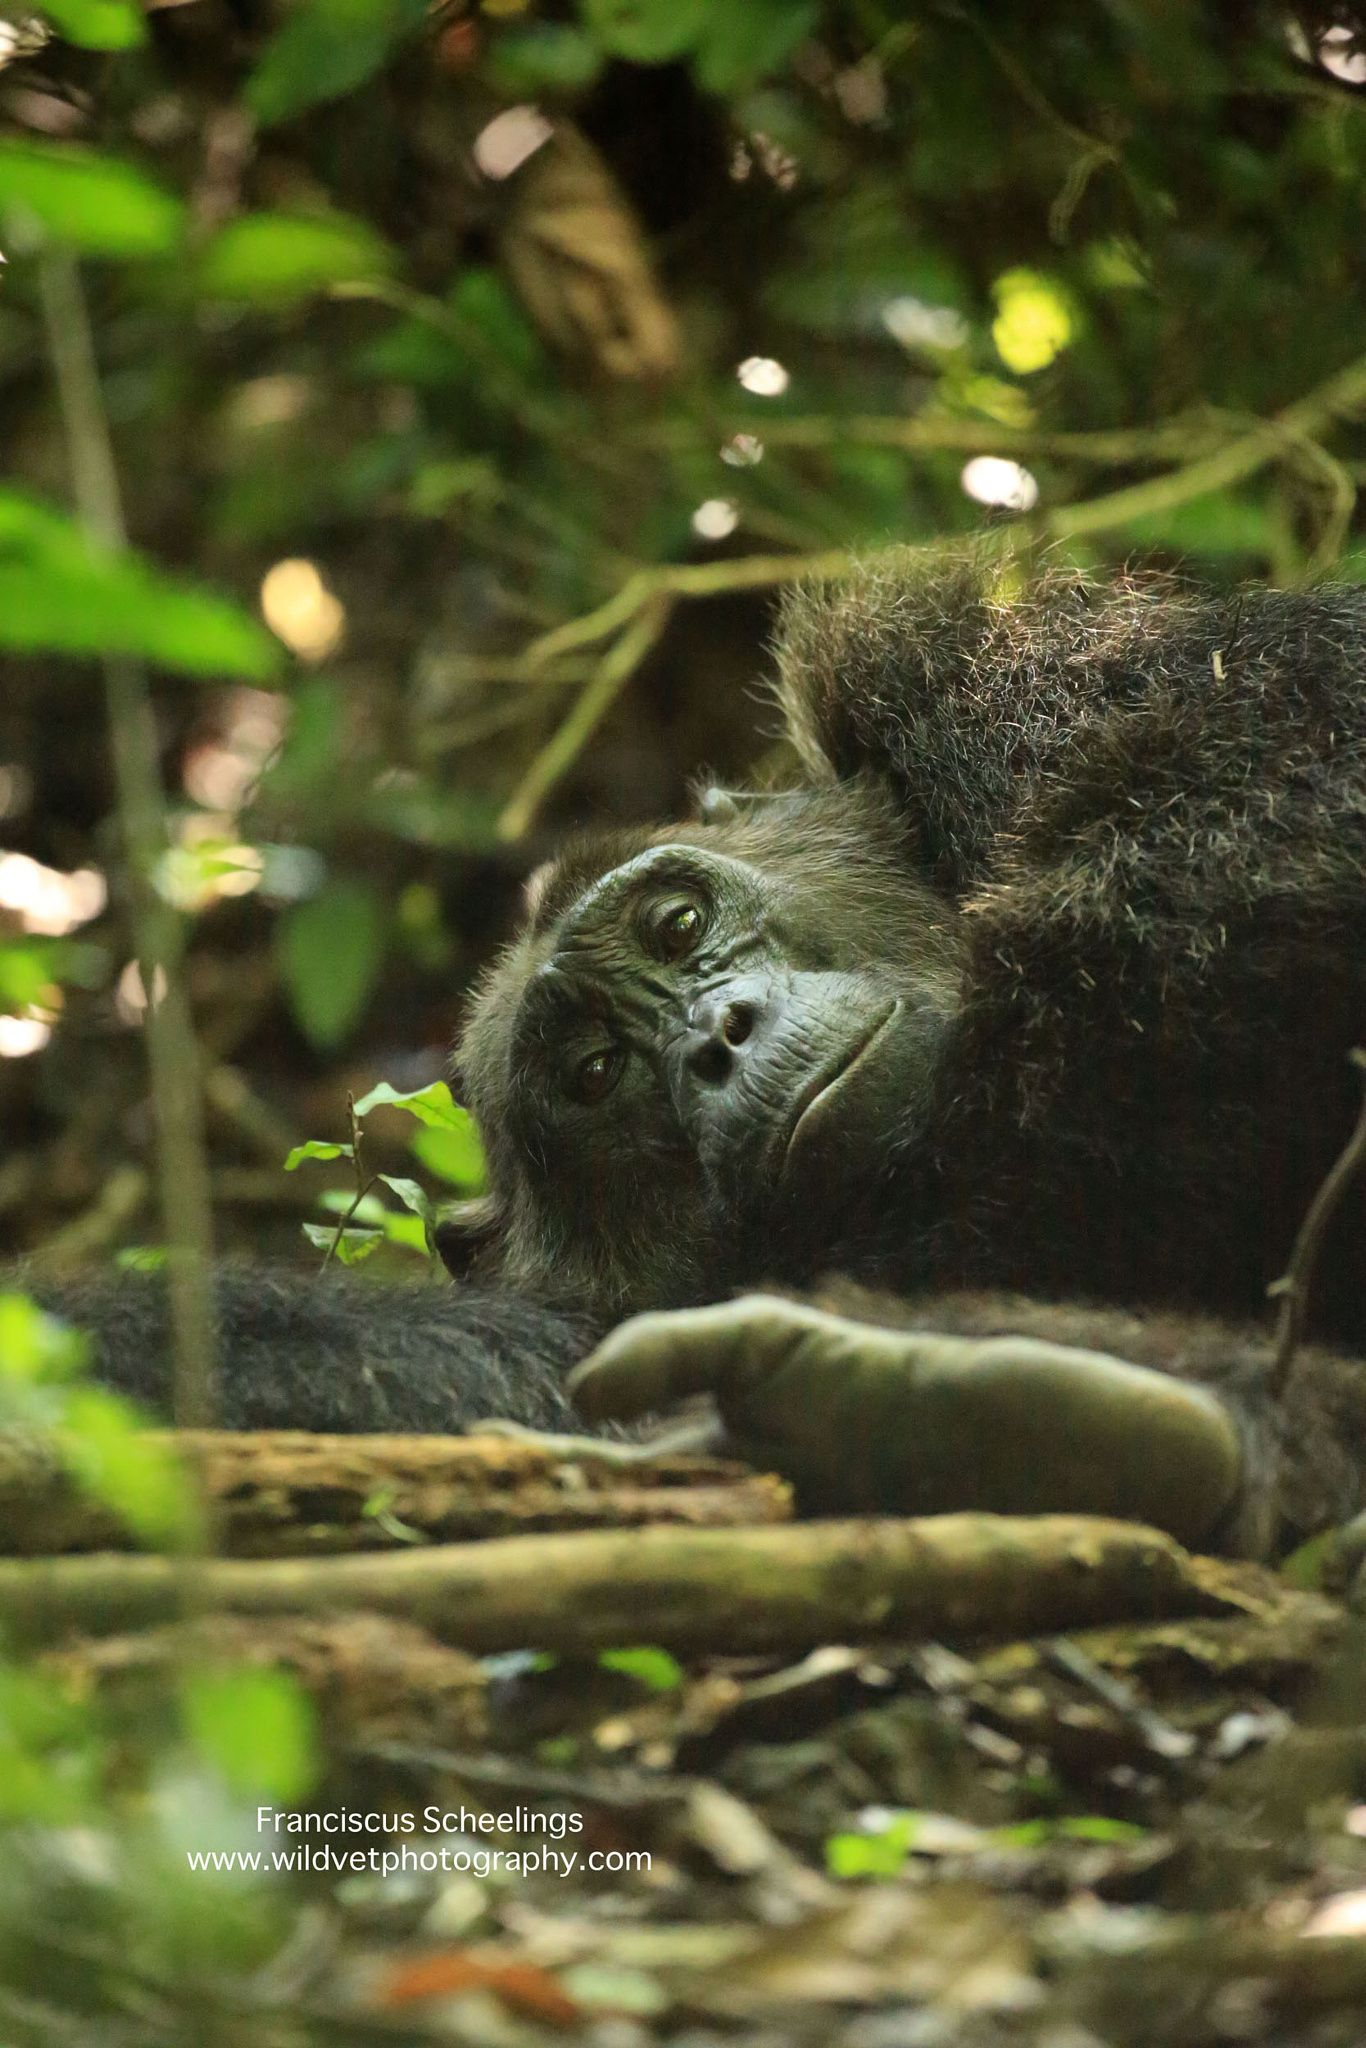 This forest floor is so comfortable An aged chimpanzee